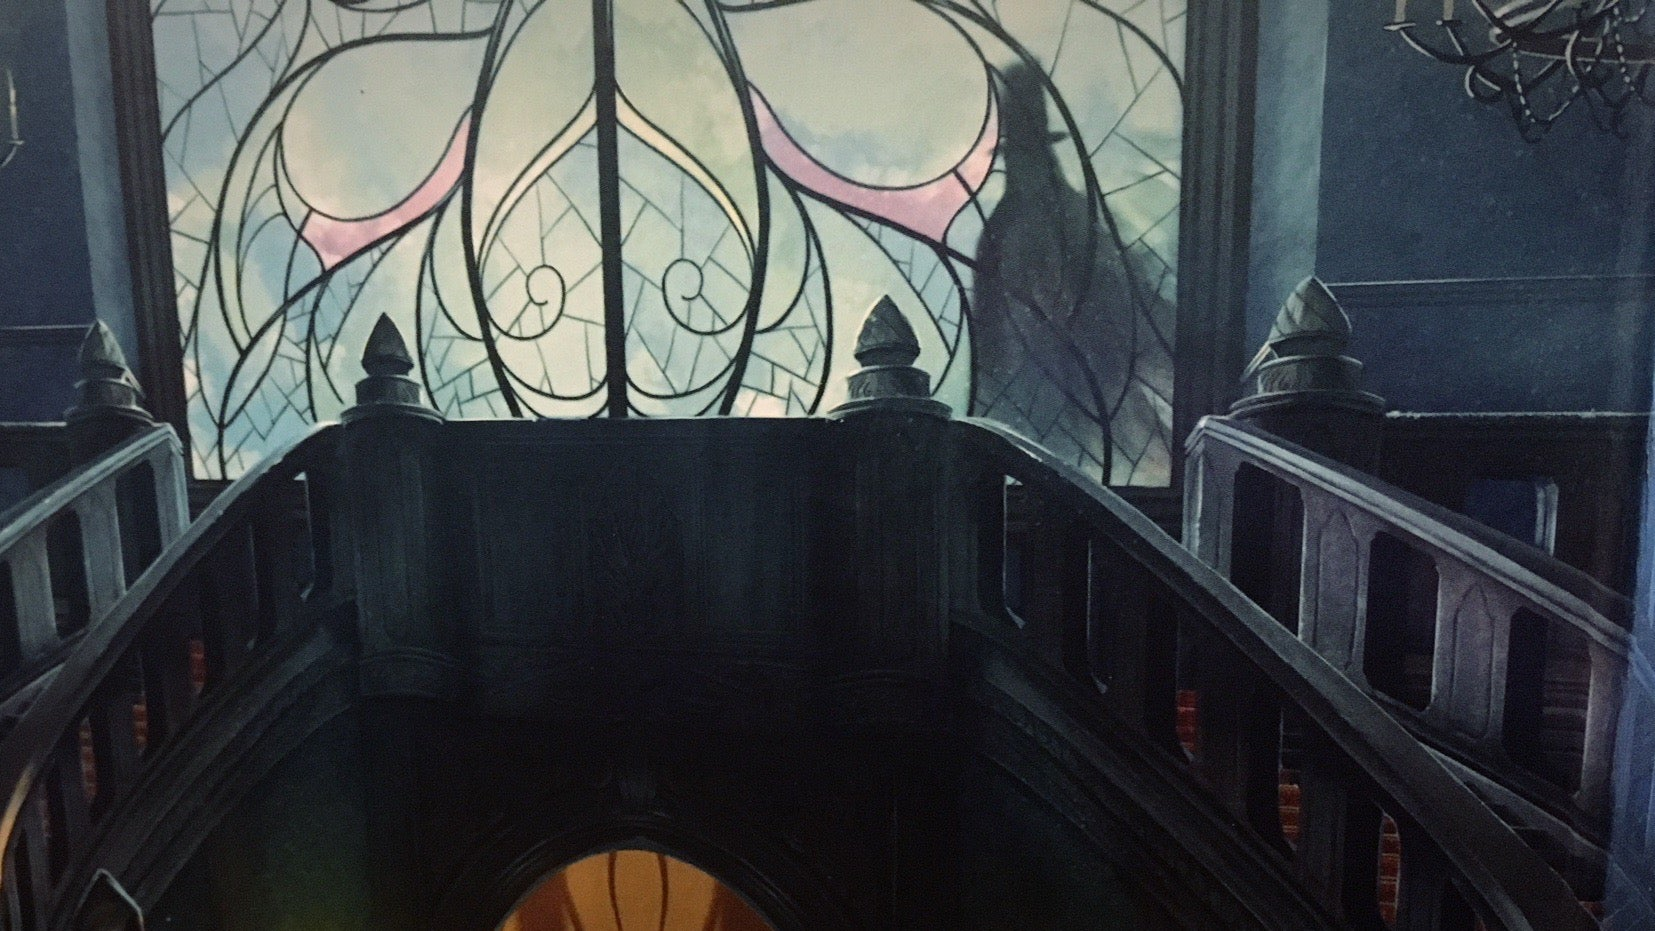 Help Save An Artistic, Emo Ghost In Mysterium